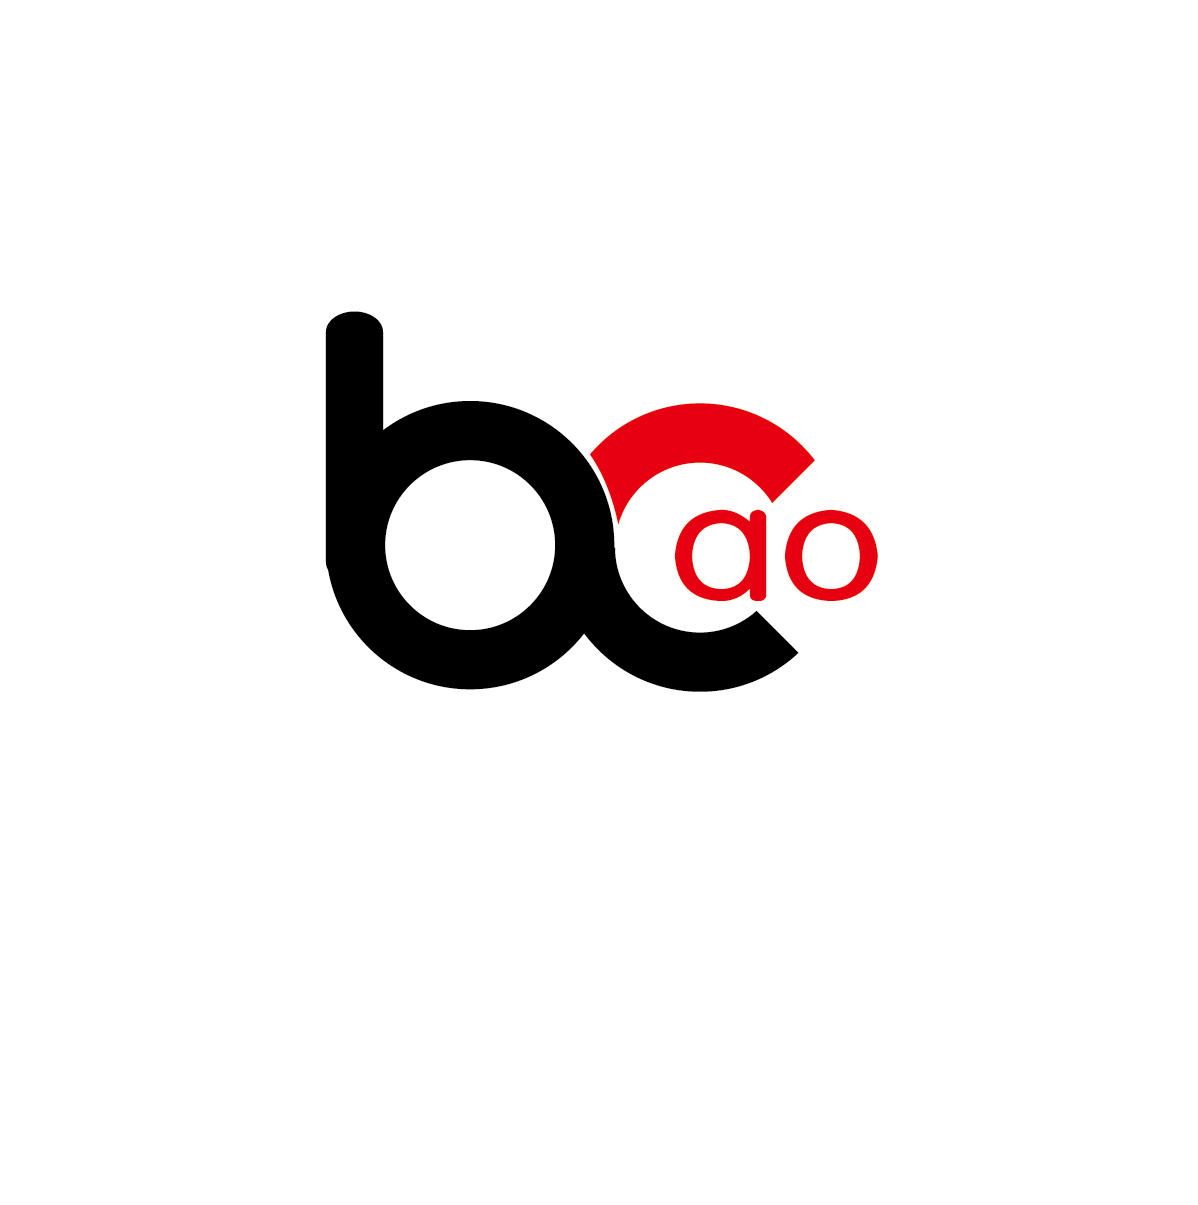 SHANDONG BOAO PACKAGE CO.,LTD